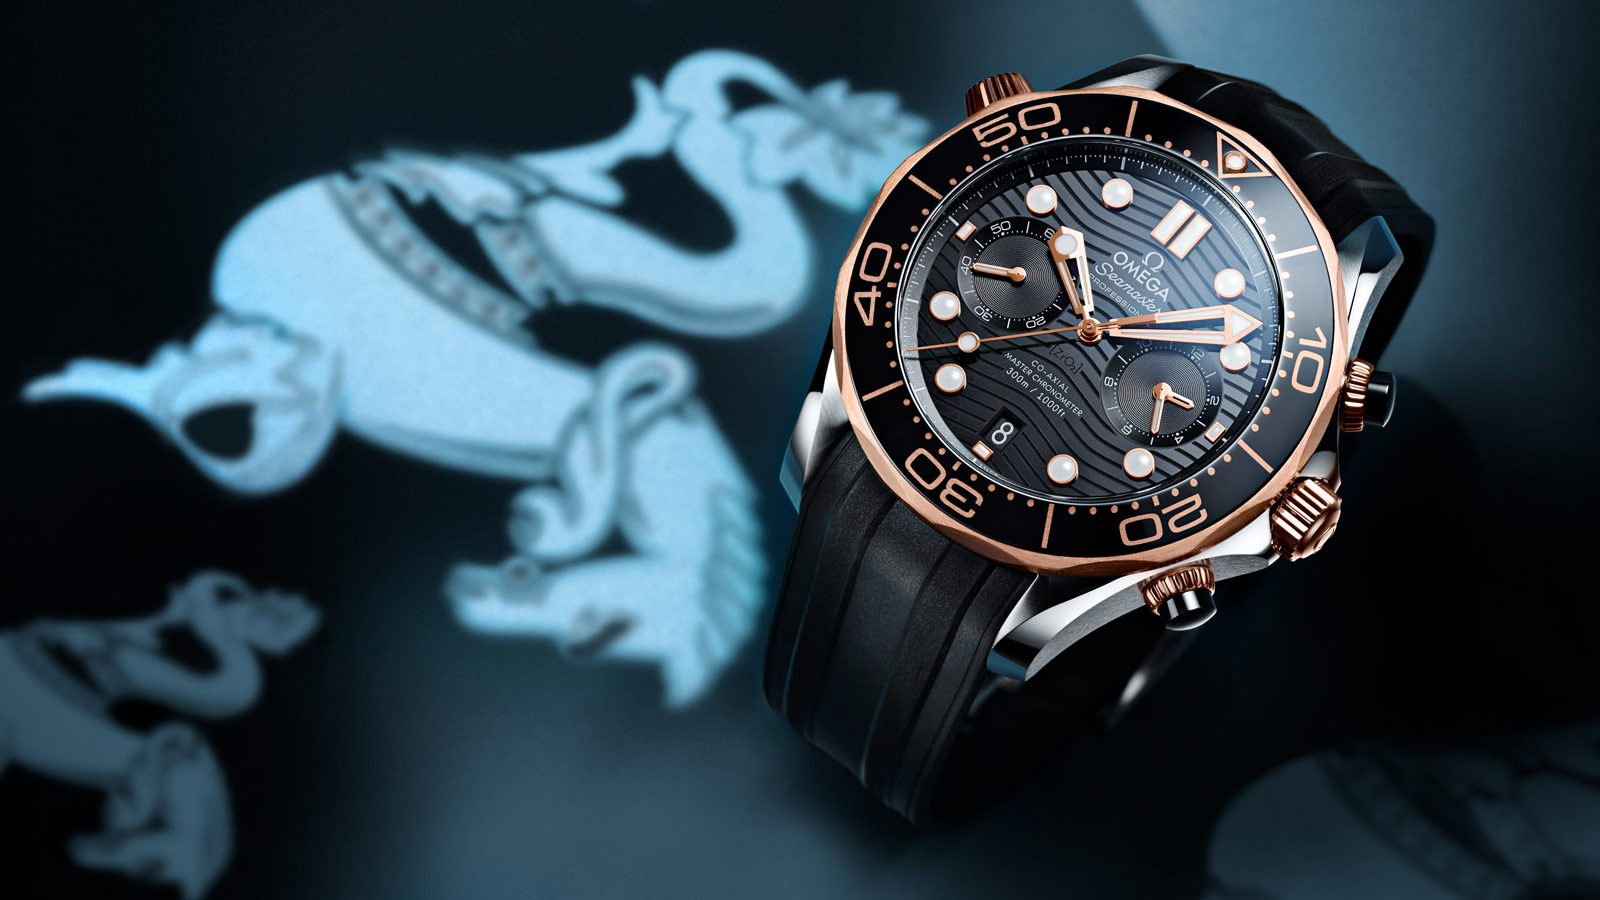 Seamaster Diver 300 M Diver 300M Omega Co‑Axial Master Chronometer Chronograph 44 mm - 210.22.44.51.01.001 - View 1